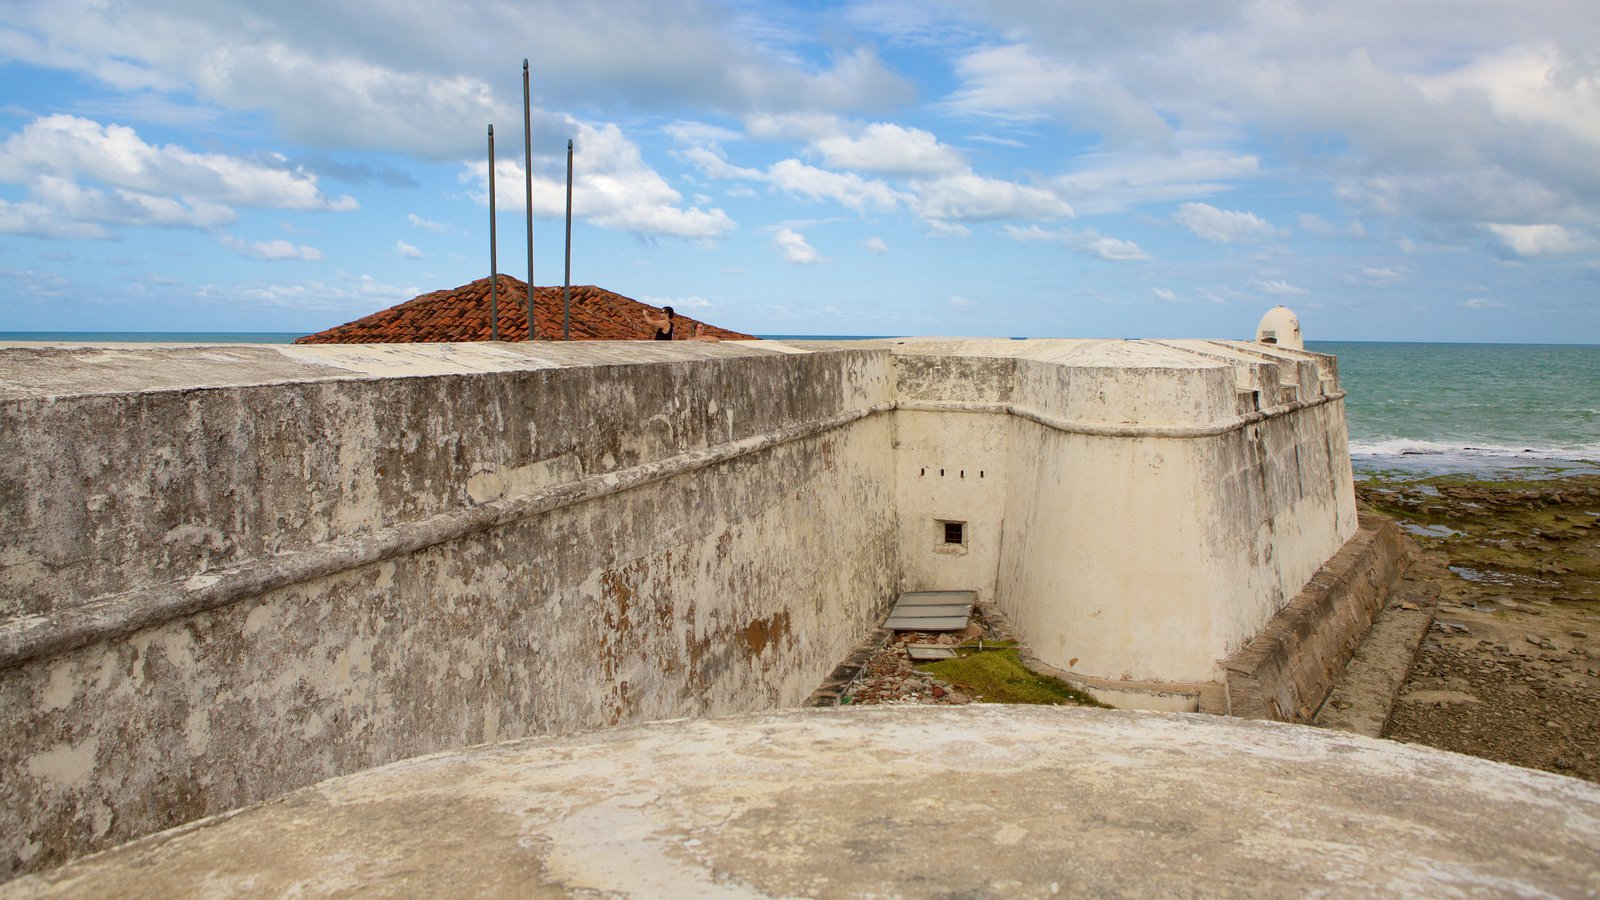 Fort of the Three Kings featuring general coastal views, building ruins and heritage elements